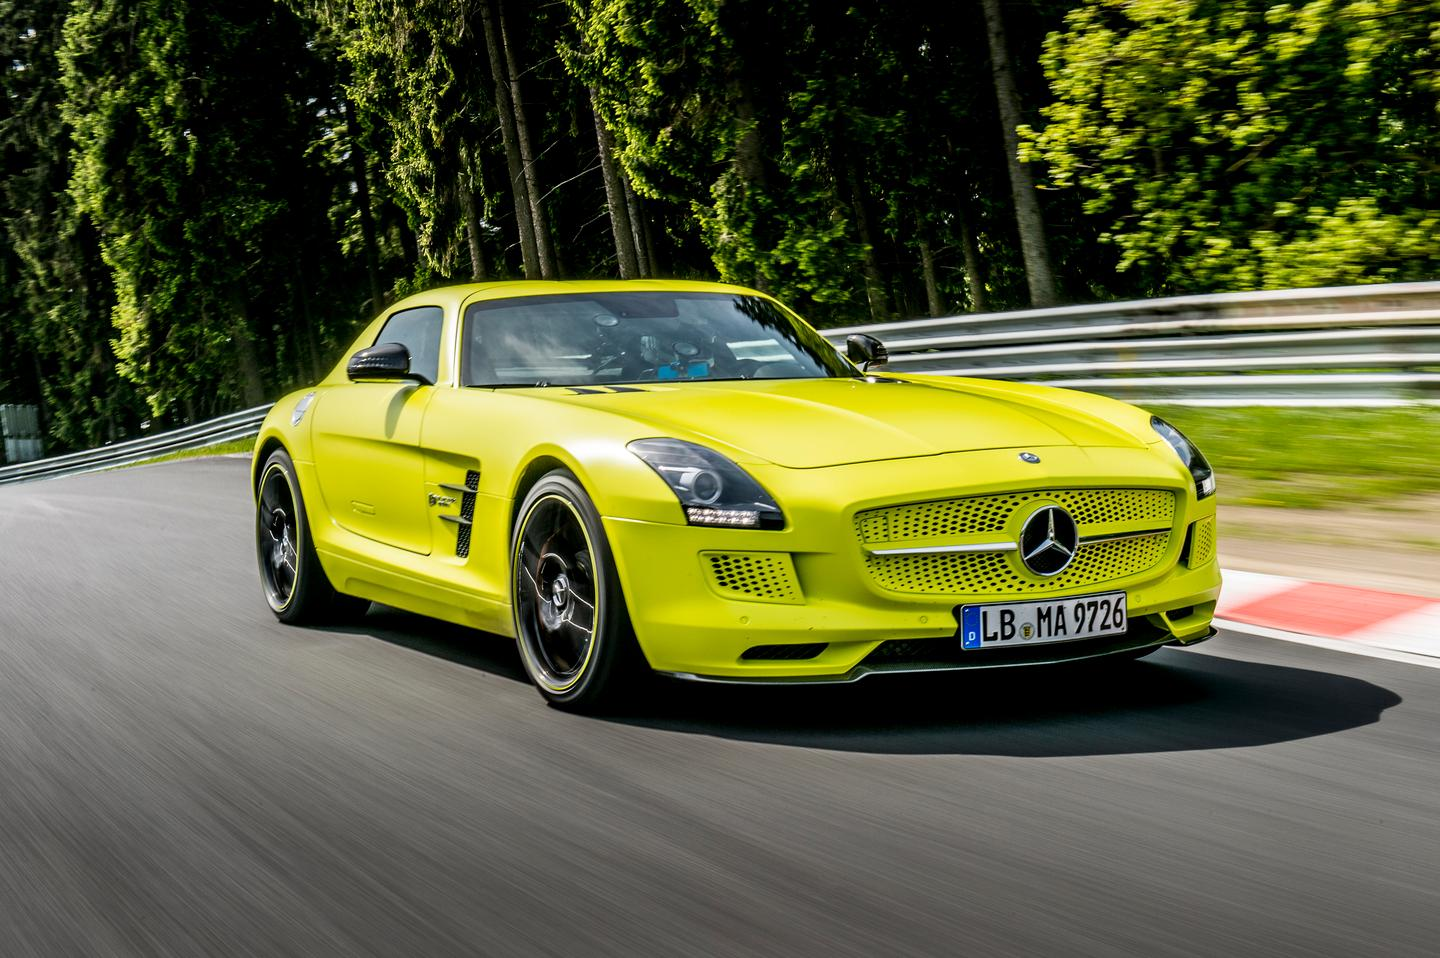 The Mercedes SLS AMG Coupé Electric Drive sets a 'Ring record